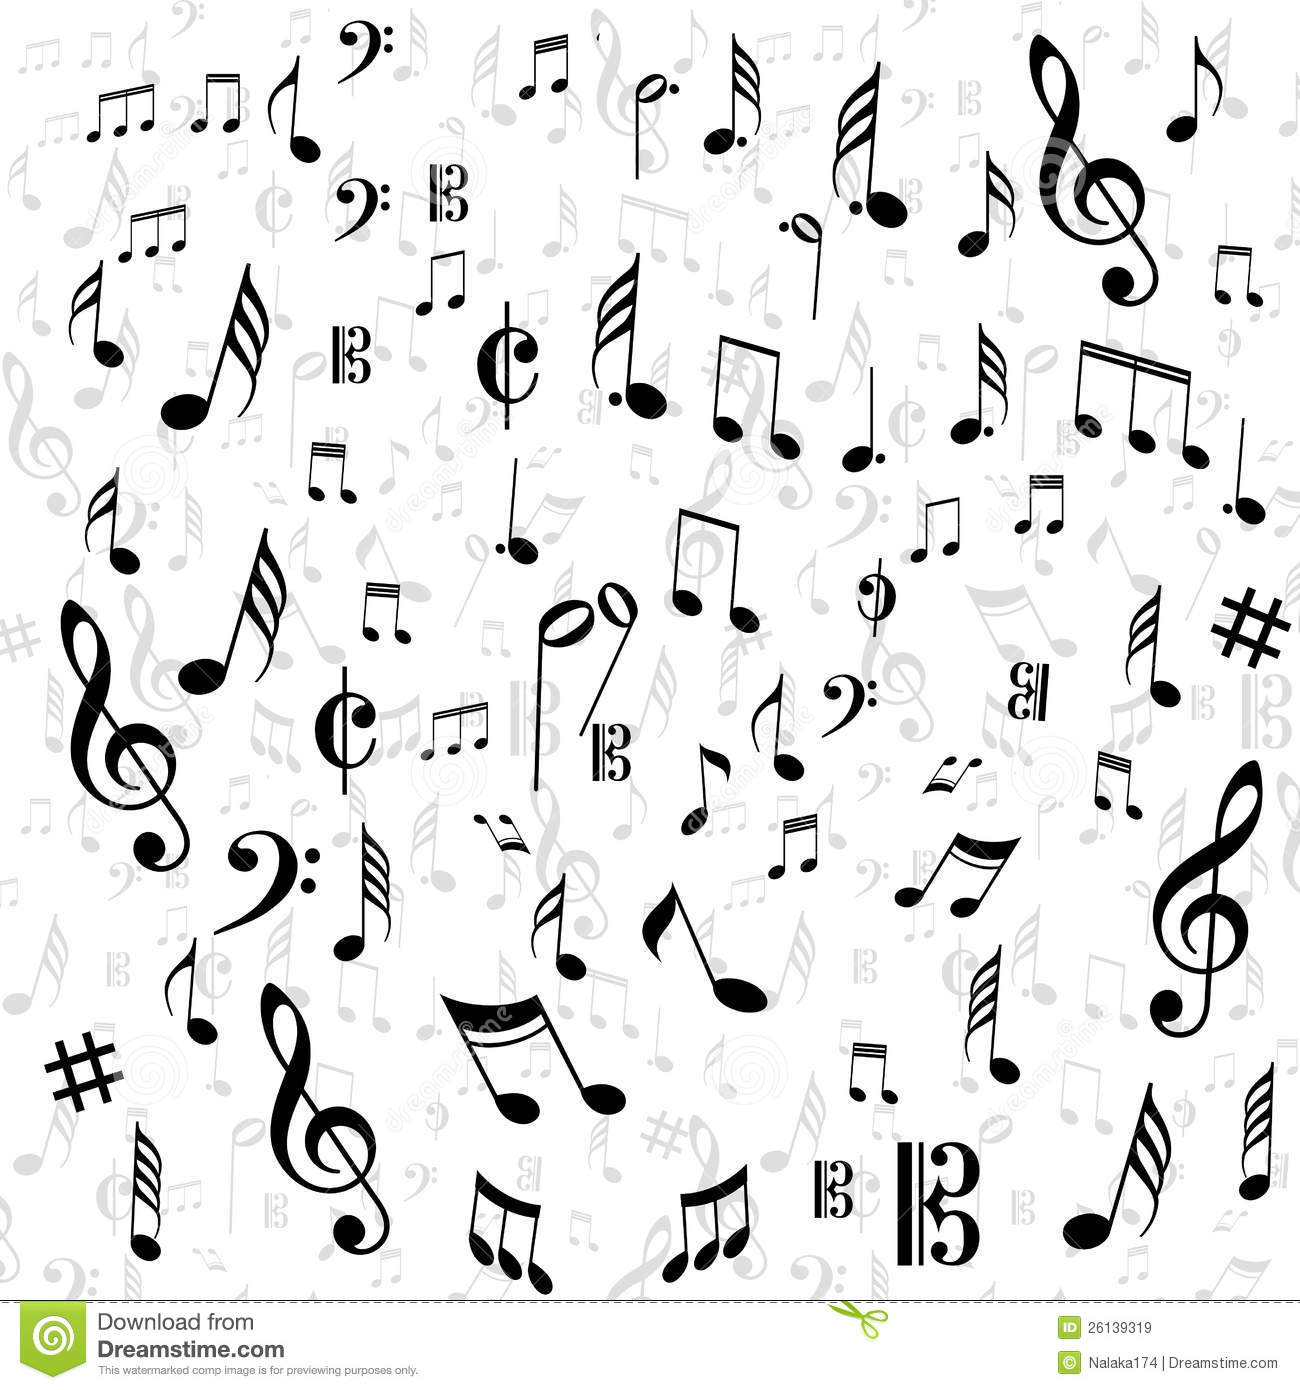 how to understand music notes